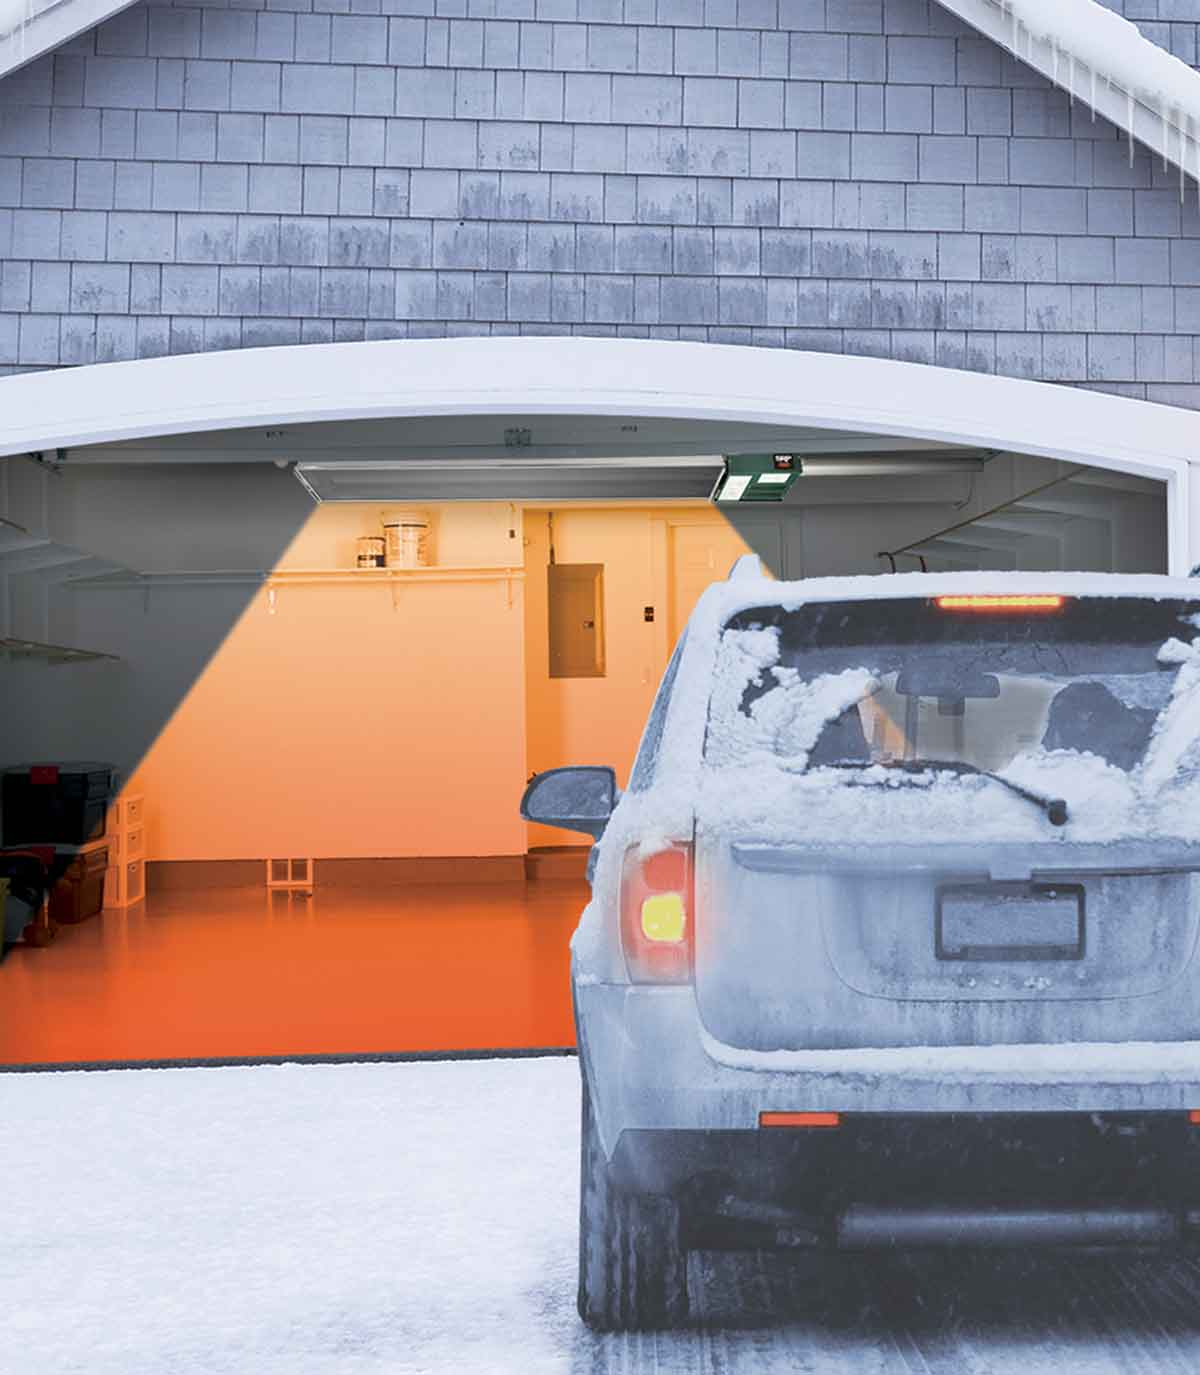 The leading-edge garage heater